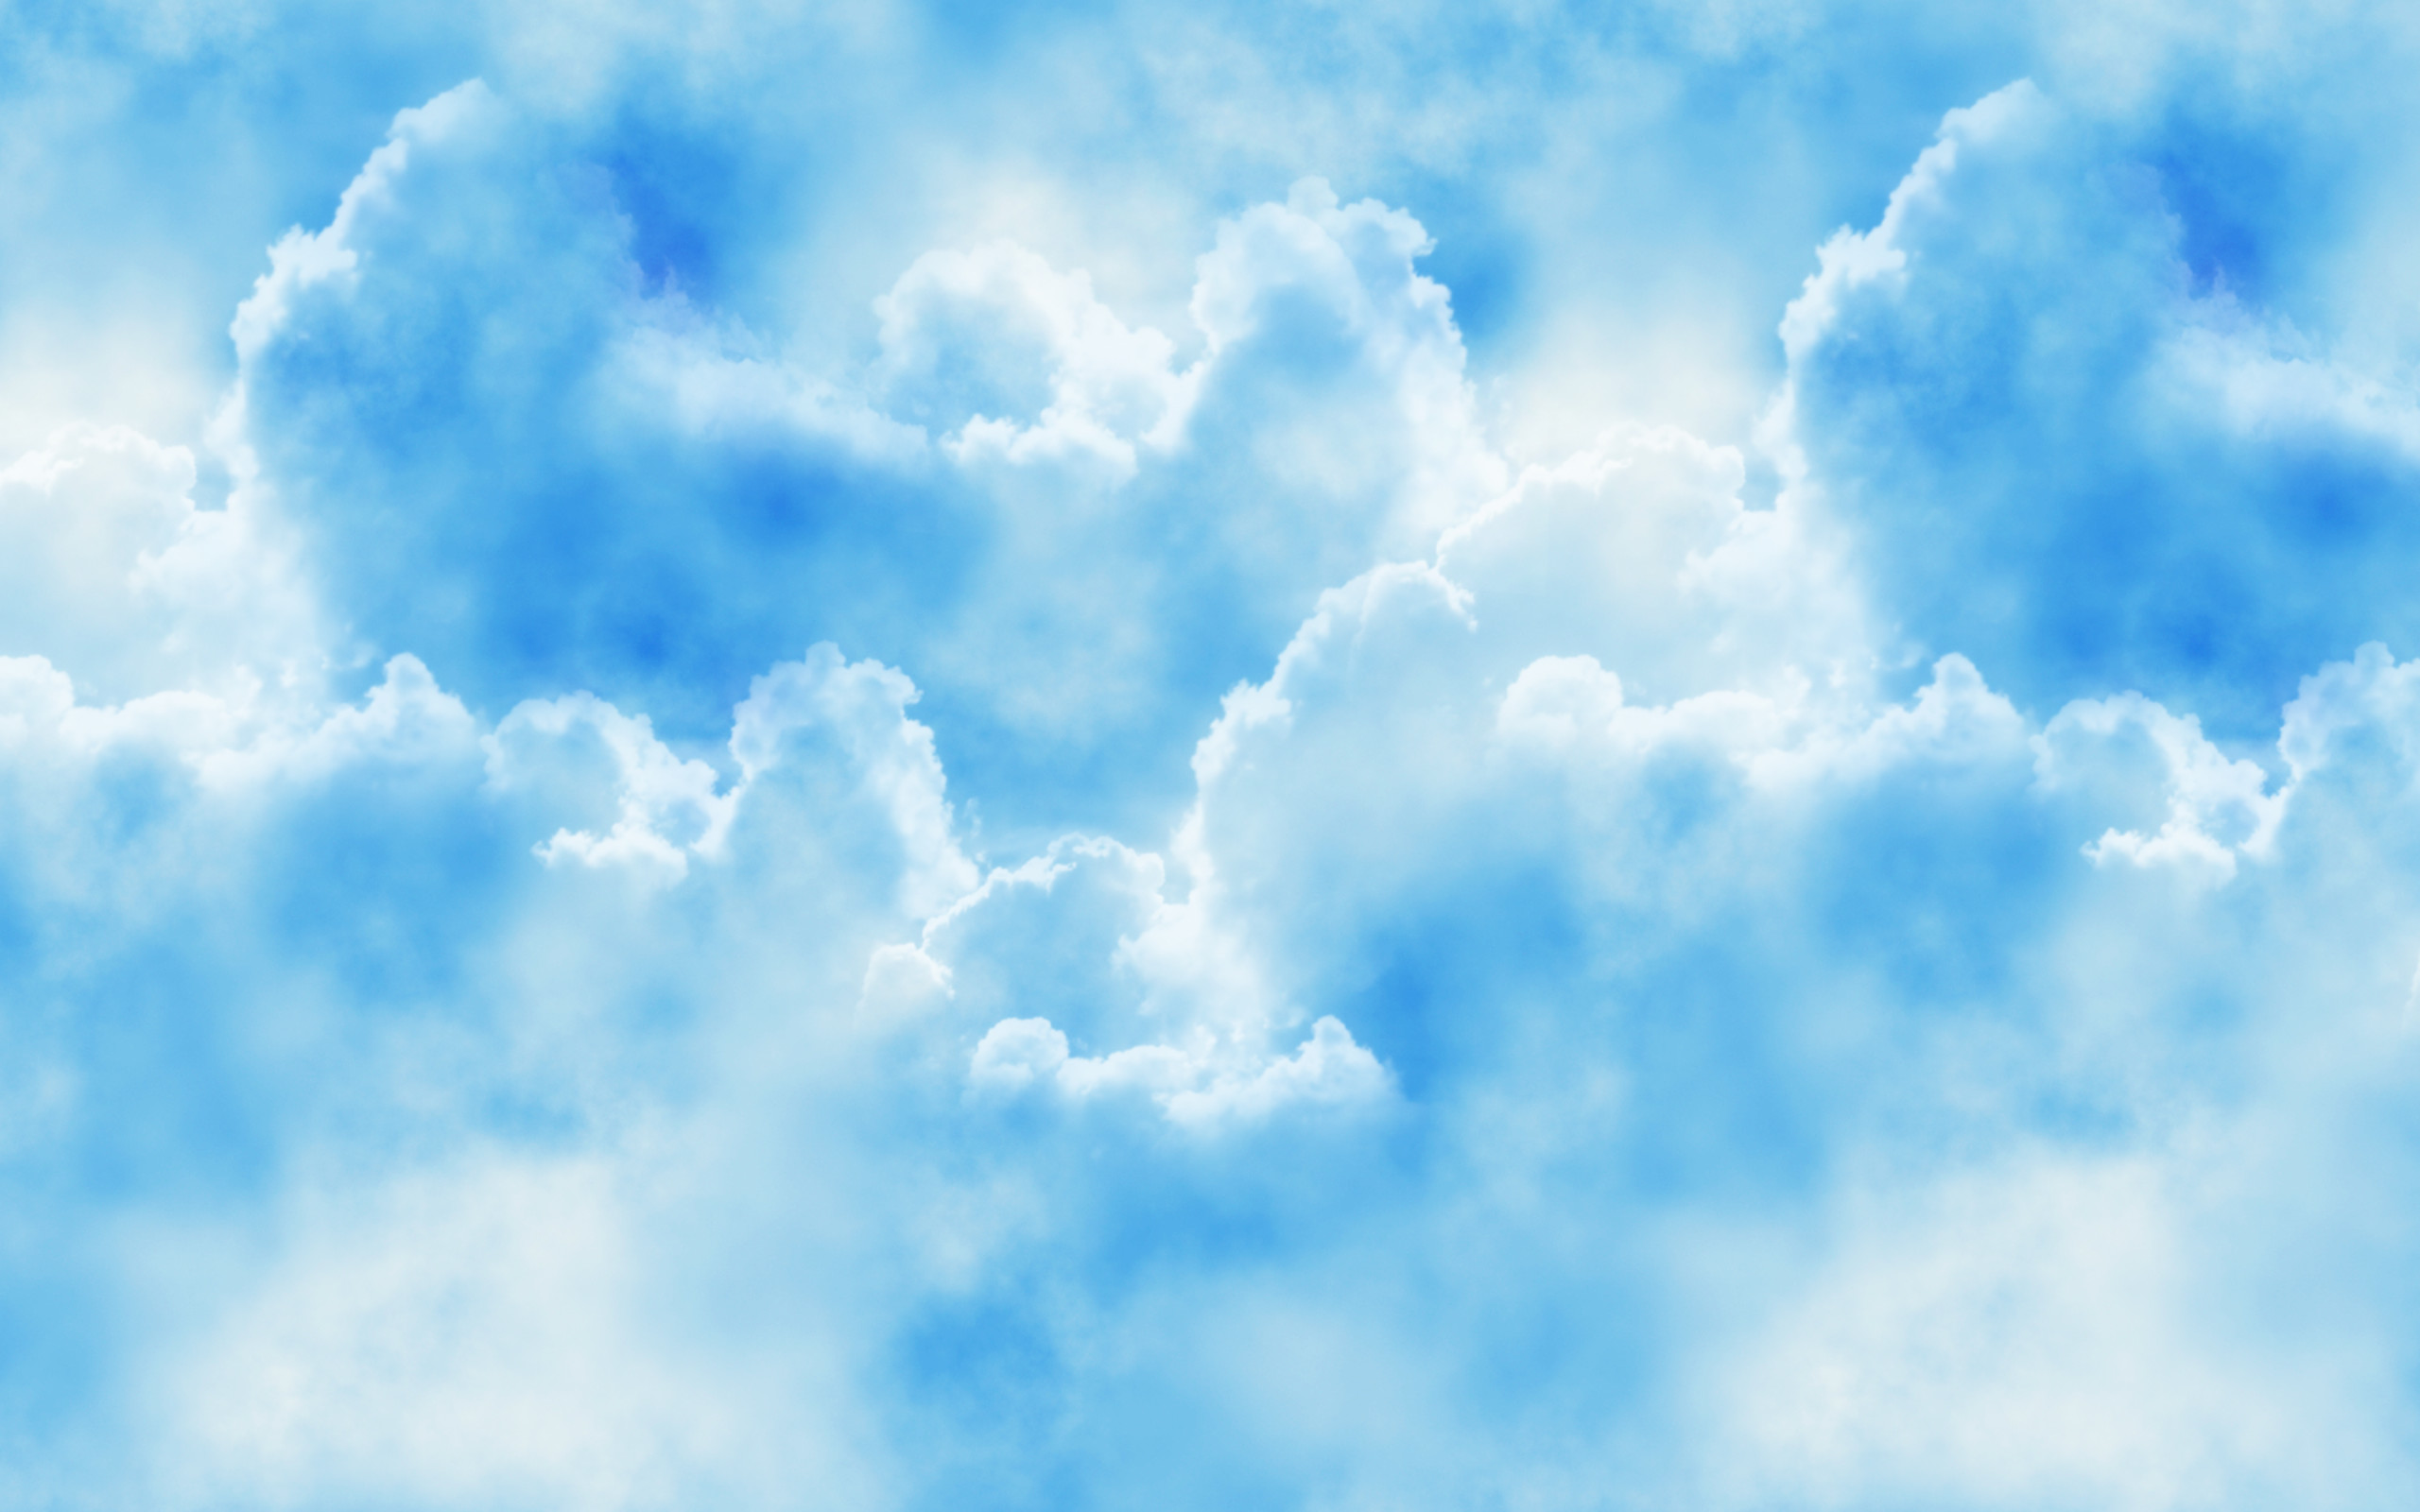 2560x1600 Earth - Sky Earth Cloud Blue Wallpaper - Cloudy Sky Background PNG